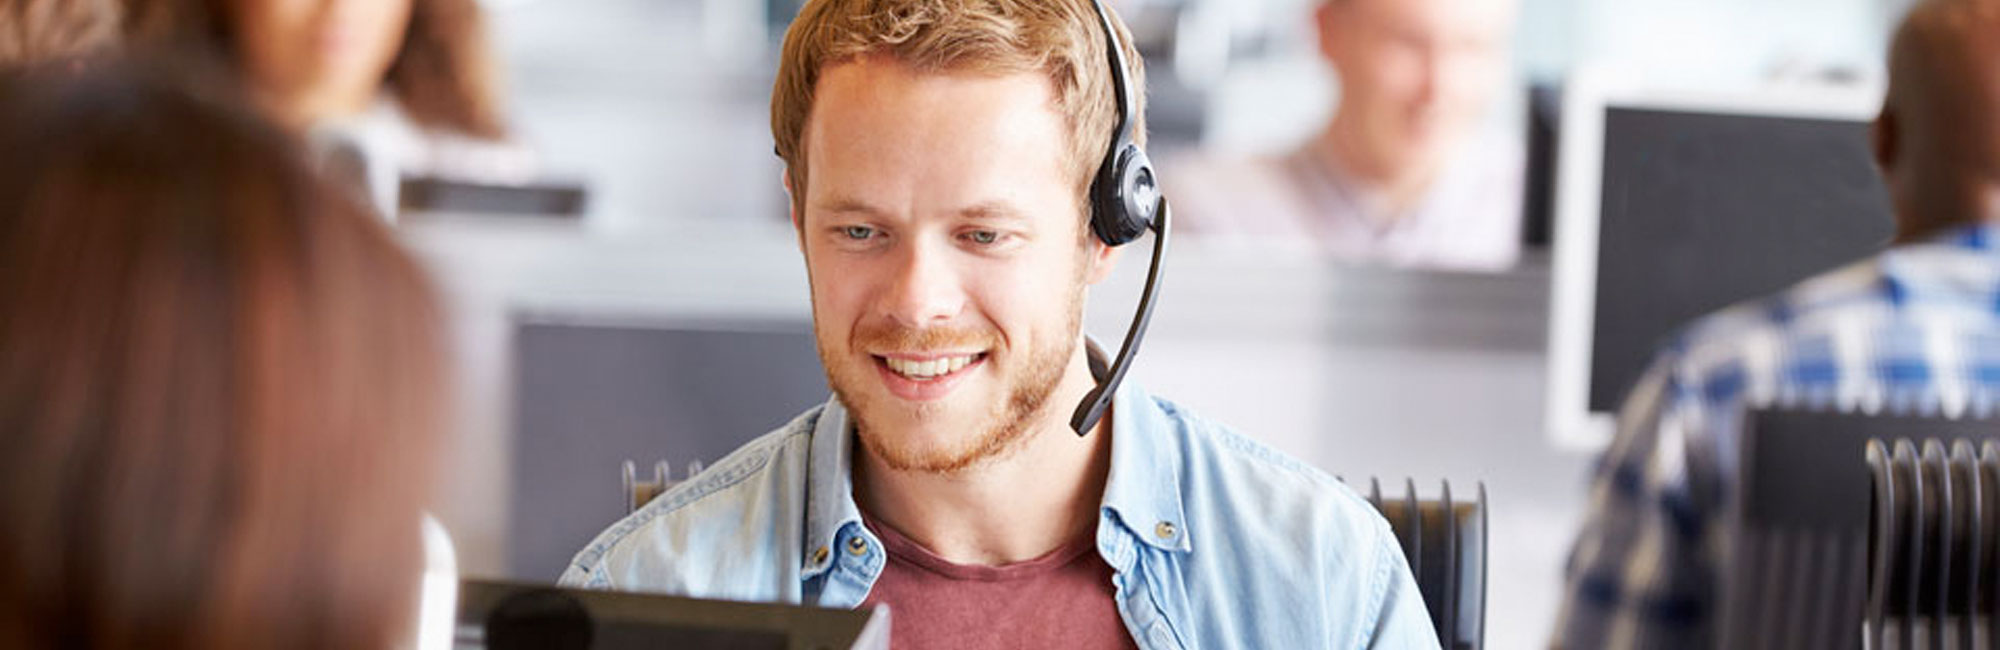 6 Service An Answering Service Should Provide